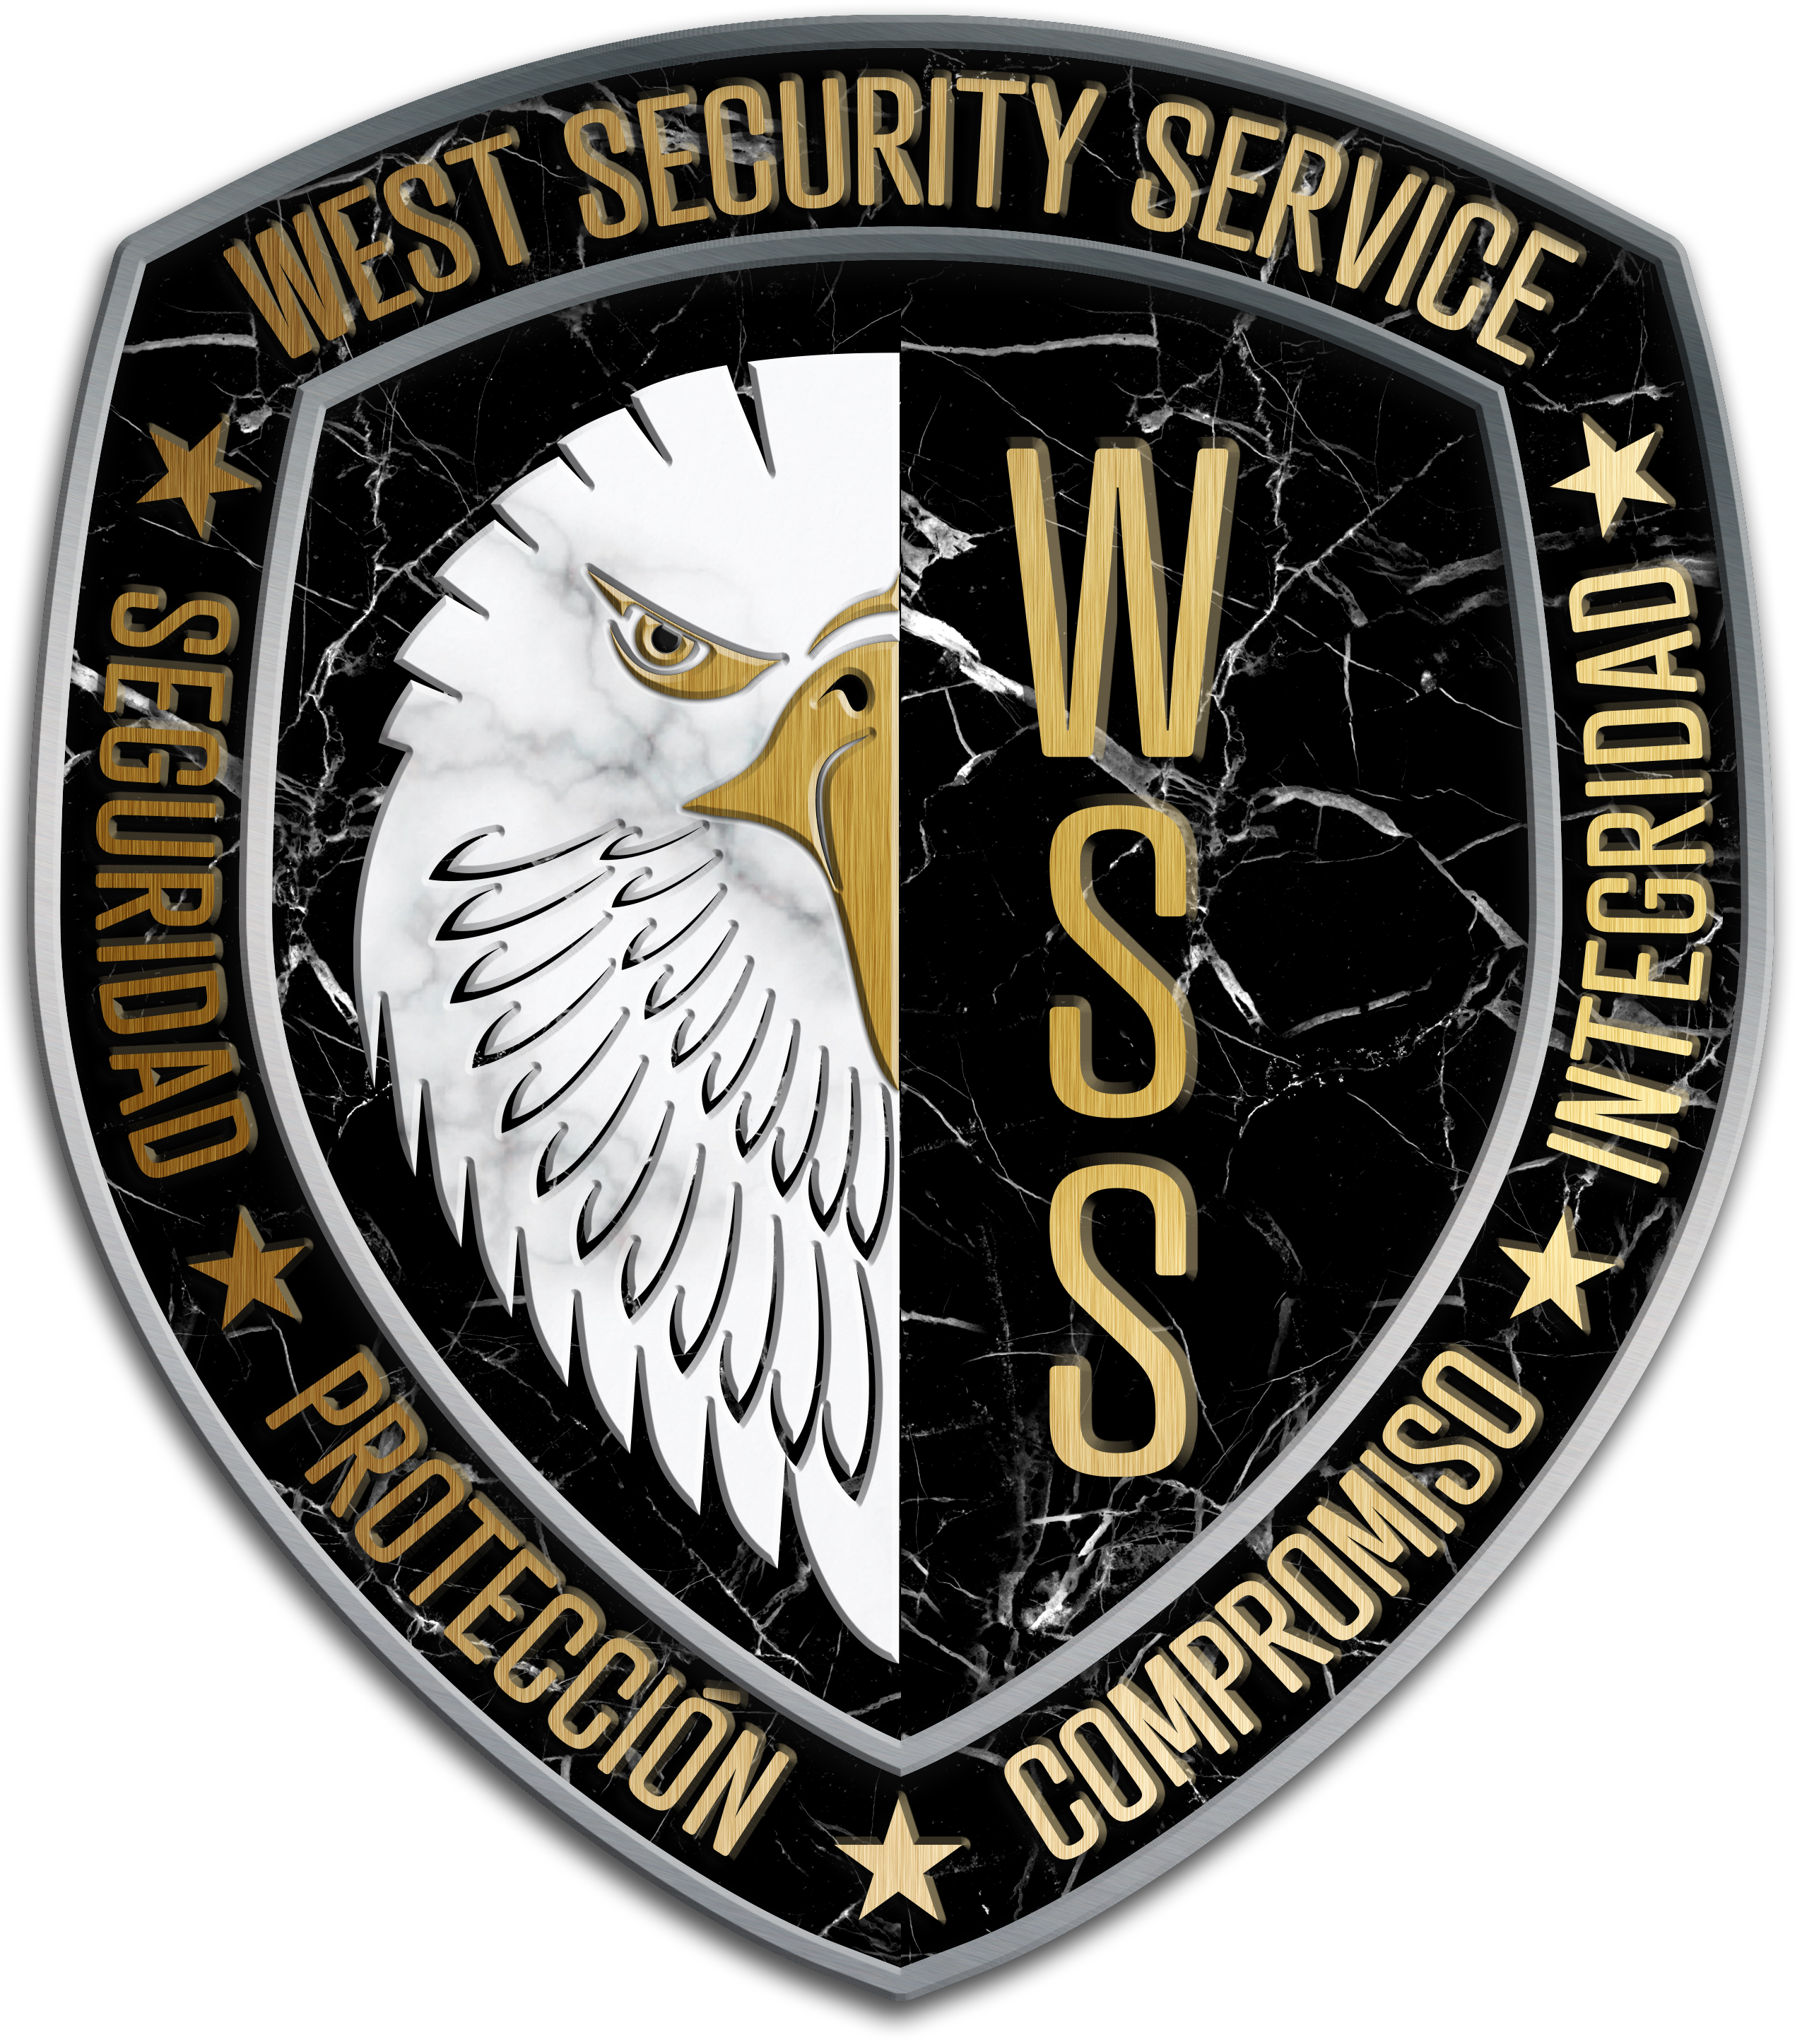 West Security Services